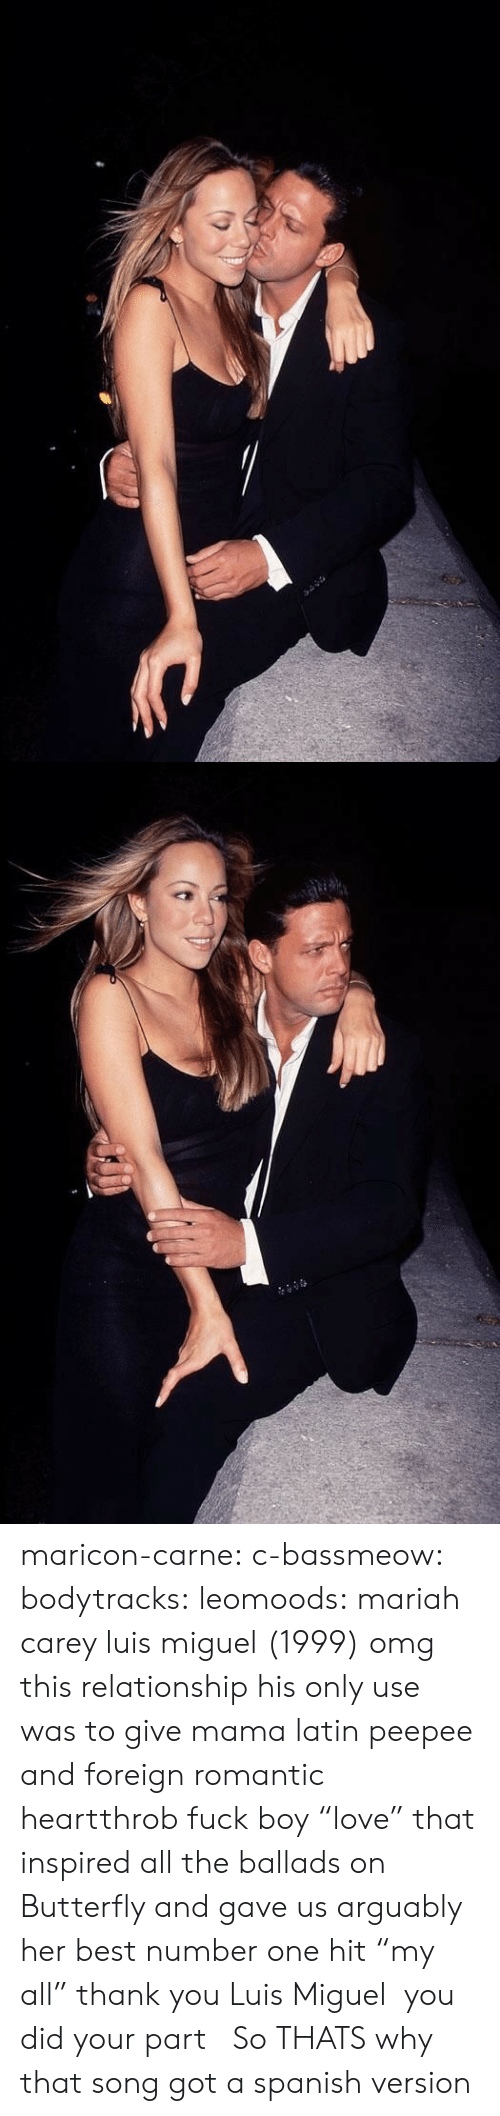 "Gif, Mariah Carey, and Omg: maricon-carne:  c-bassmeow:  bodytracks: leomoods: mariah carey  luis miguel (1999) omg this relationship  his only use was to give mama latin peepee and foreign romantic heartthrob fuck boy ""love"" that inspired all the ballads on Butterfly and gave us arguably her best number one hit ""my all"" thank you Luis Miguel  you did your part    So THATS why that song got a spanish version"